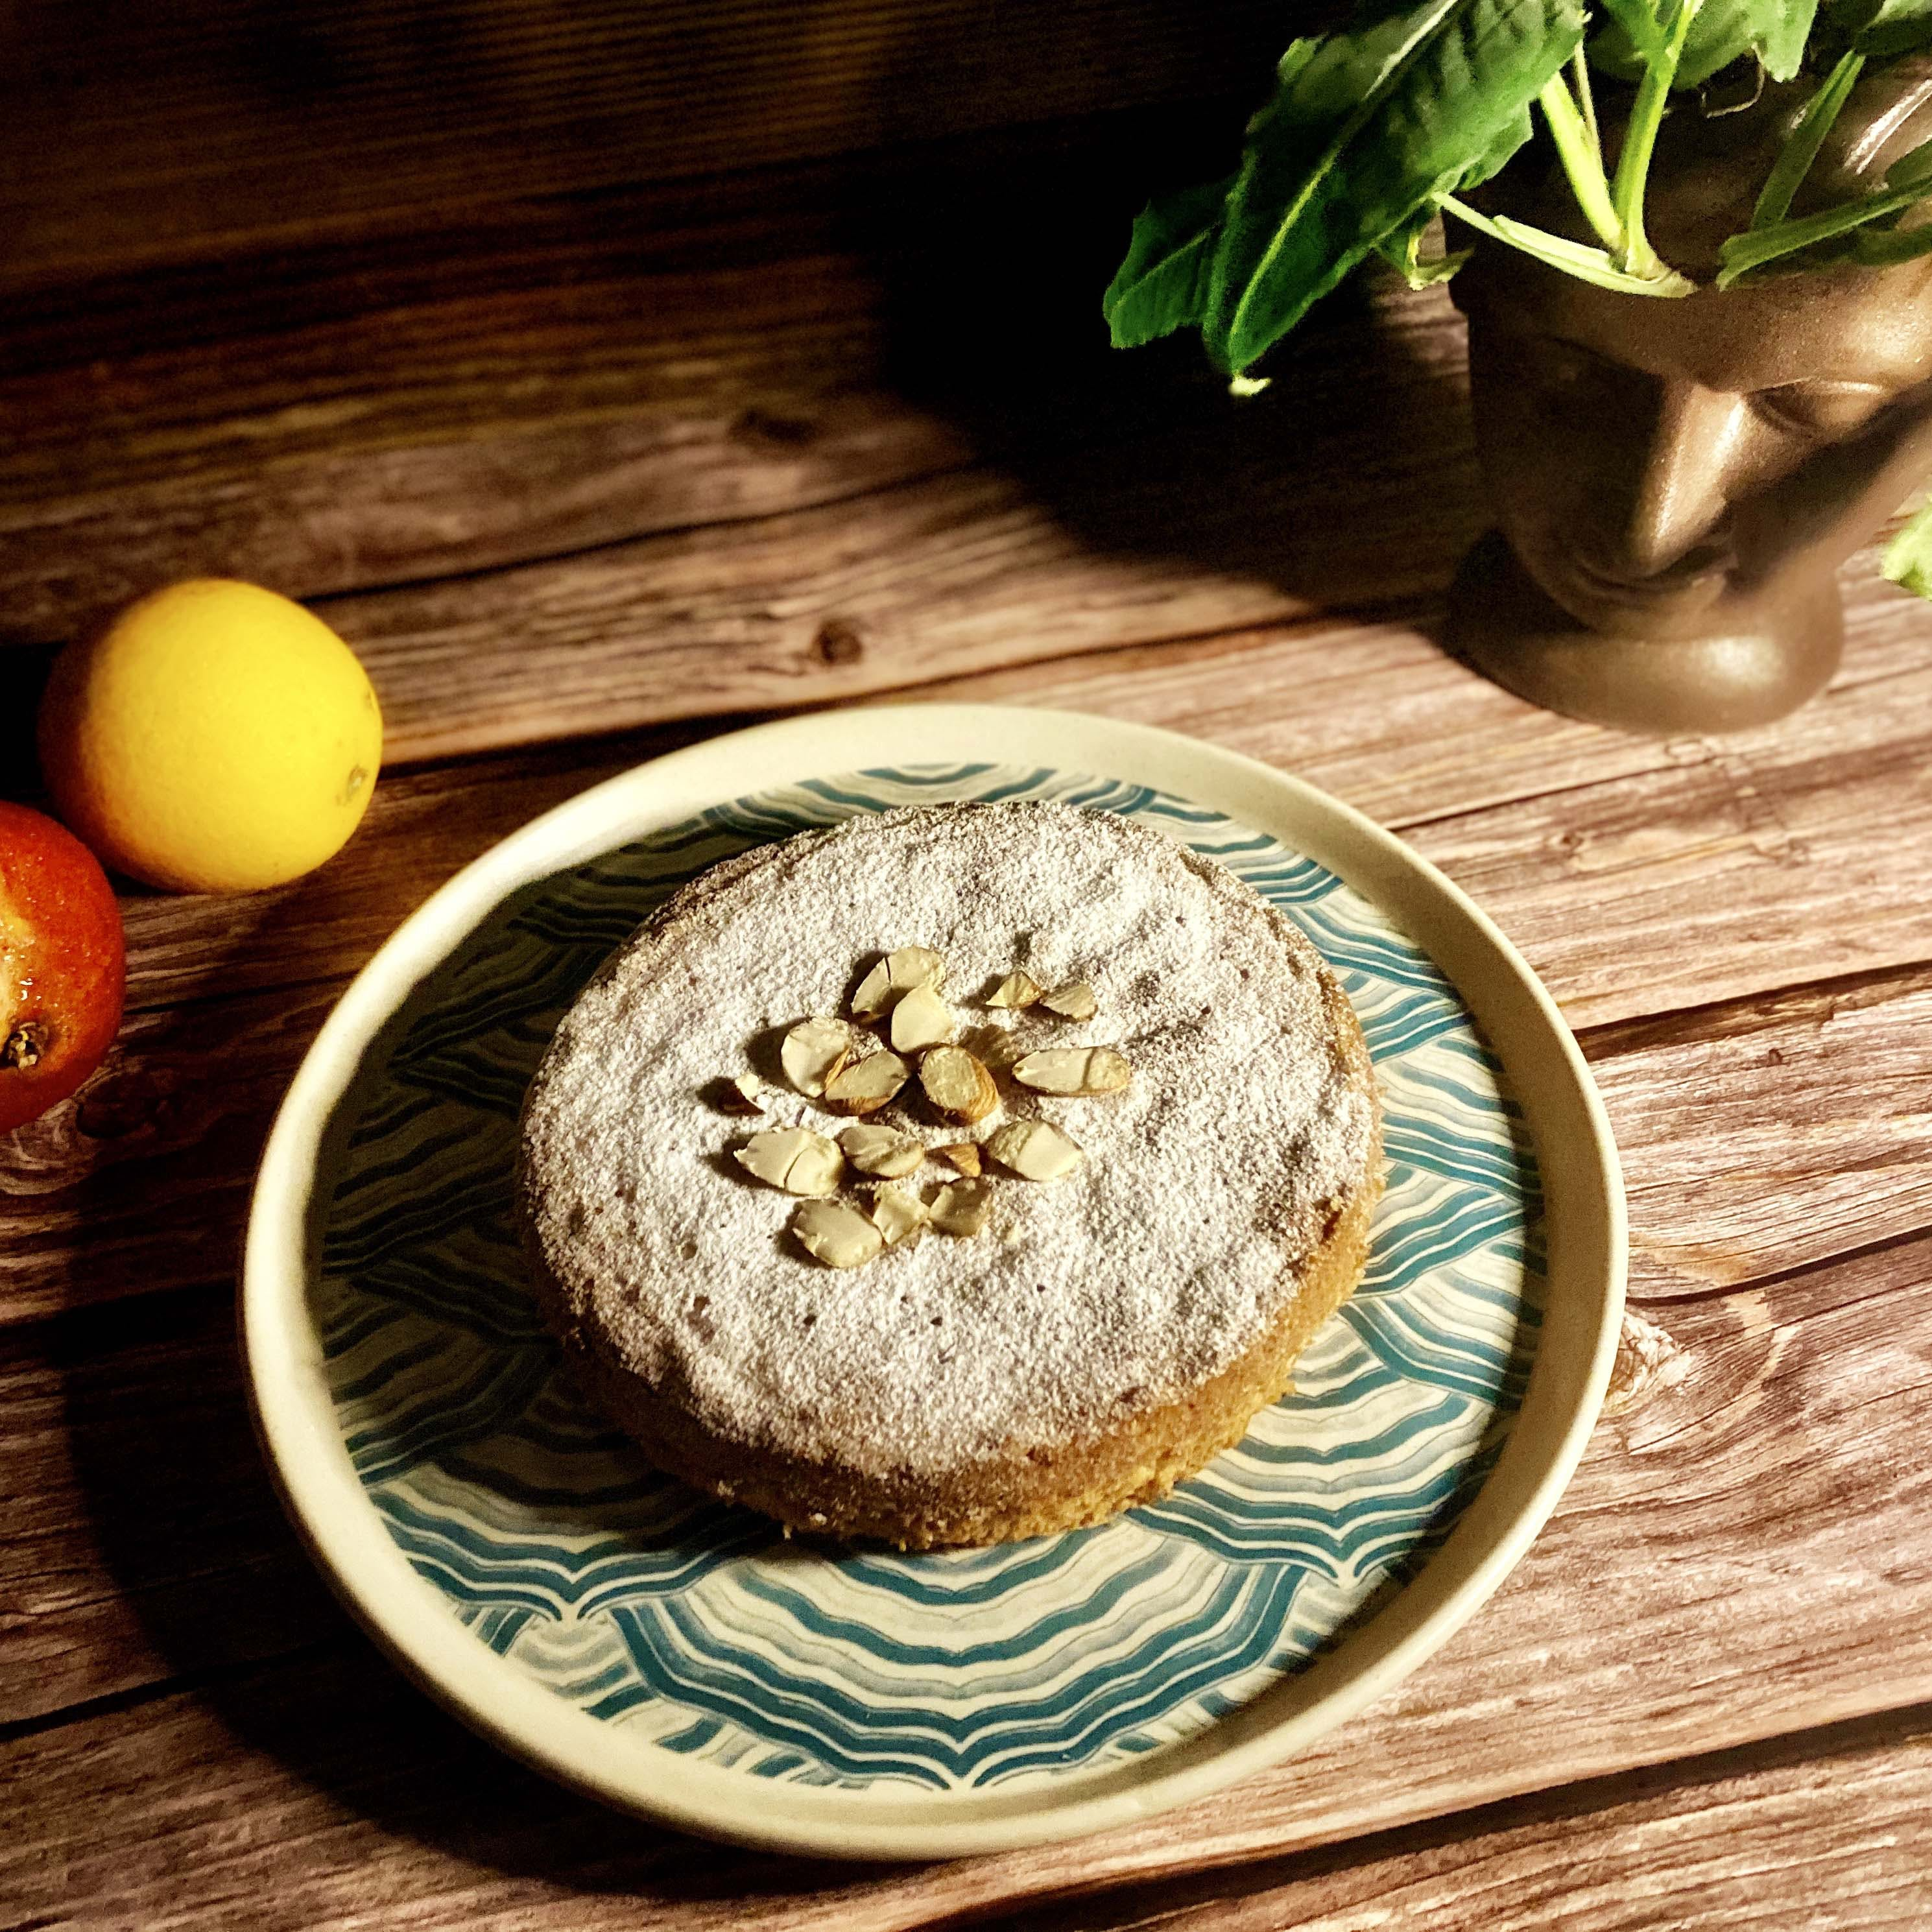 Food,Dish,Cuisine,Ingredient,Recipe,Produce,Dessert,Soda bread,Camembert Cheese,Gluten